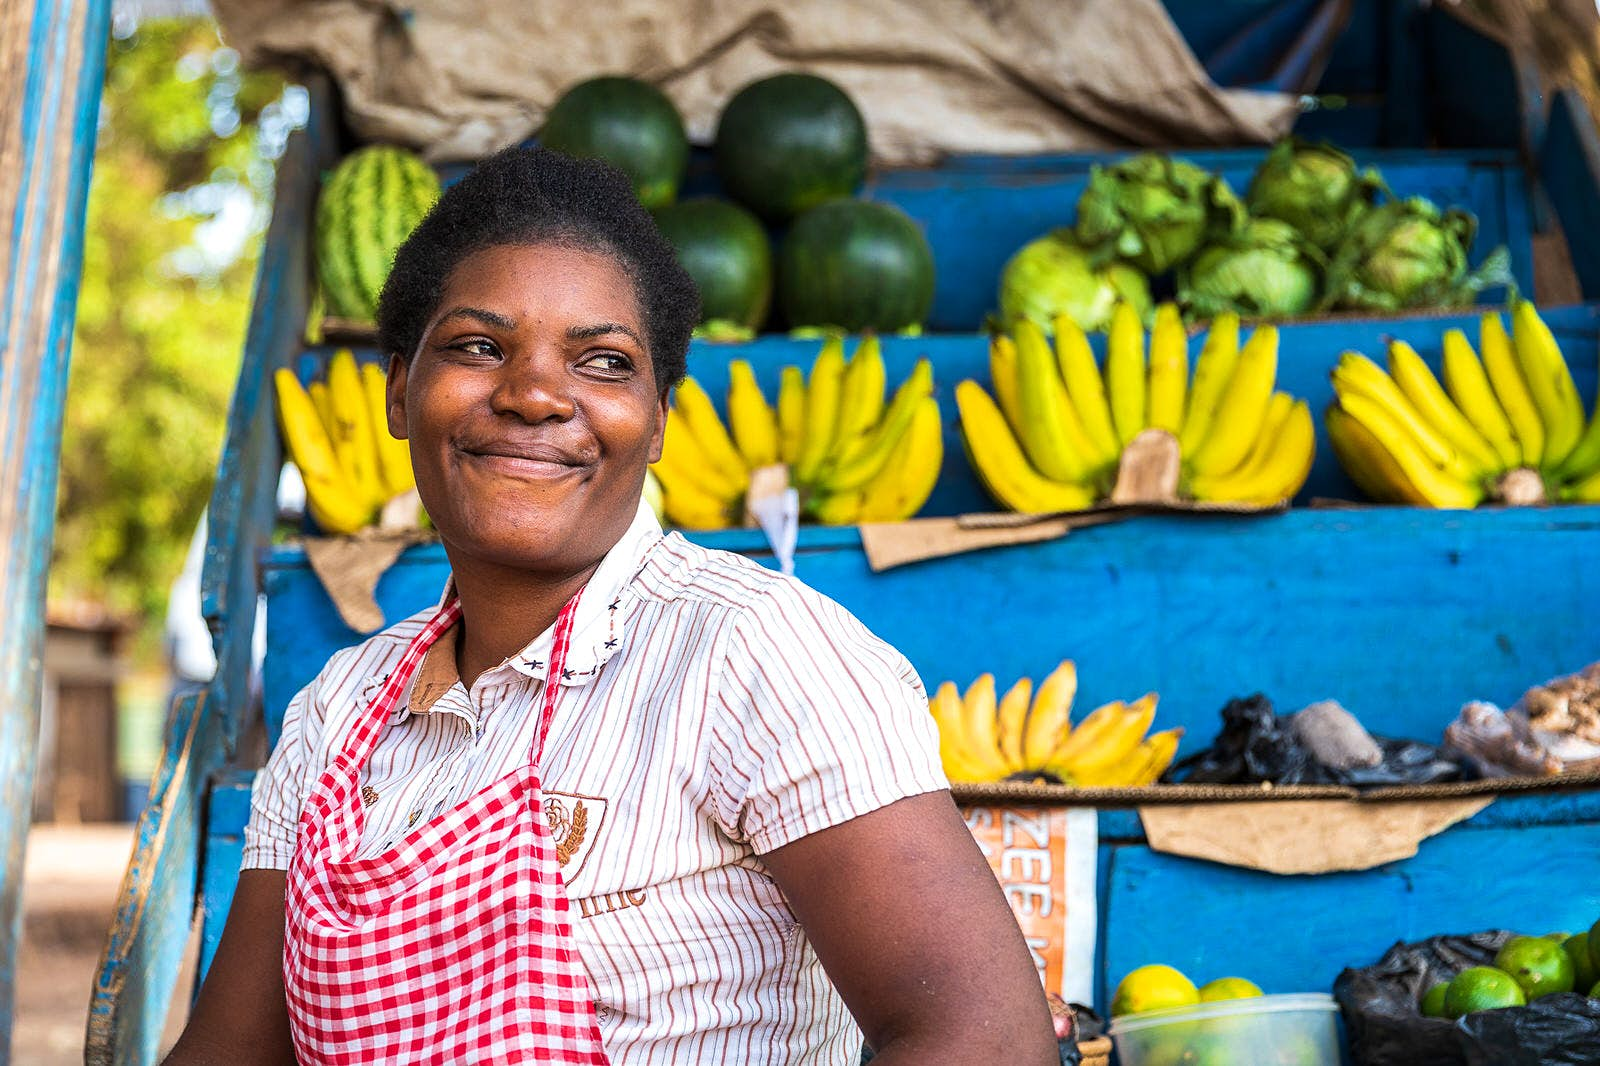 A Ugandan market trader grins, with rows of bananas stacked behind her